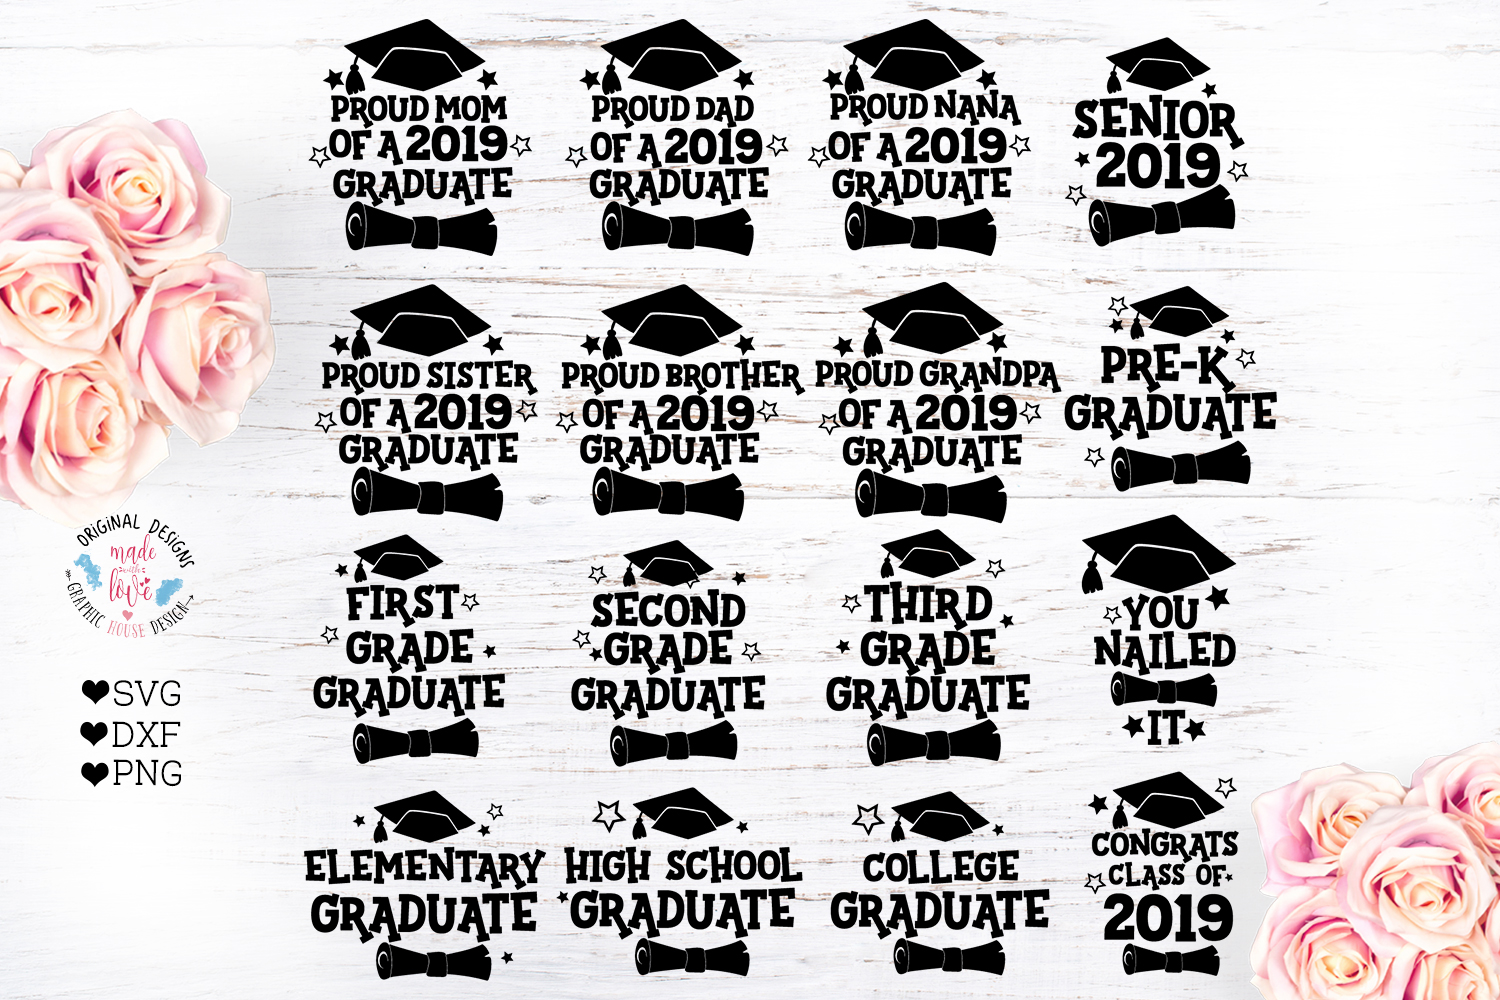 Download Free Graduation Bundle Graphic By Graphichousedesign Creative Fabrica for Cricut Explore, Silhouette and other cutting machines.